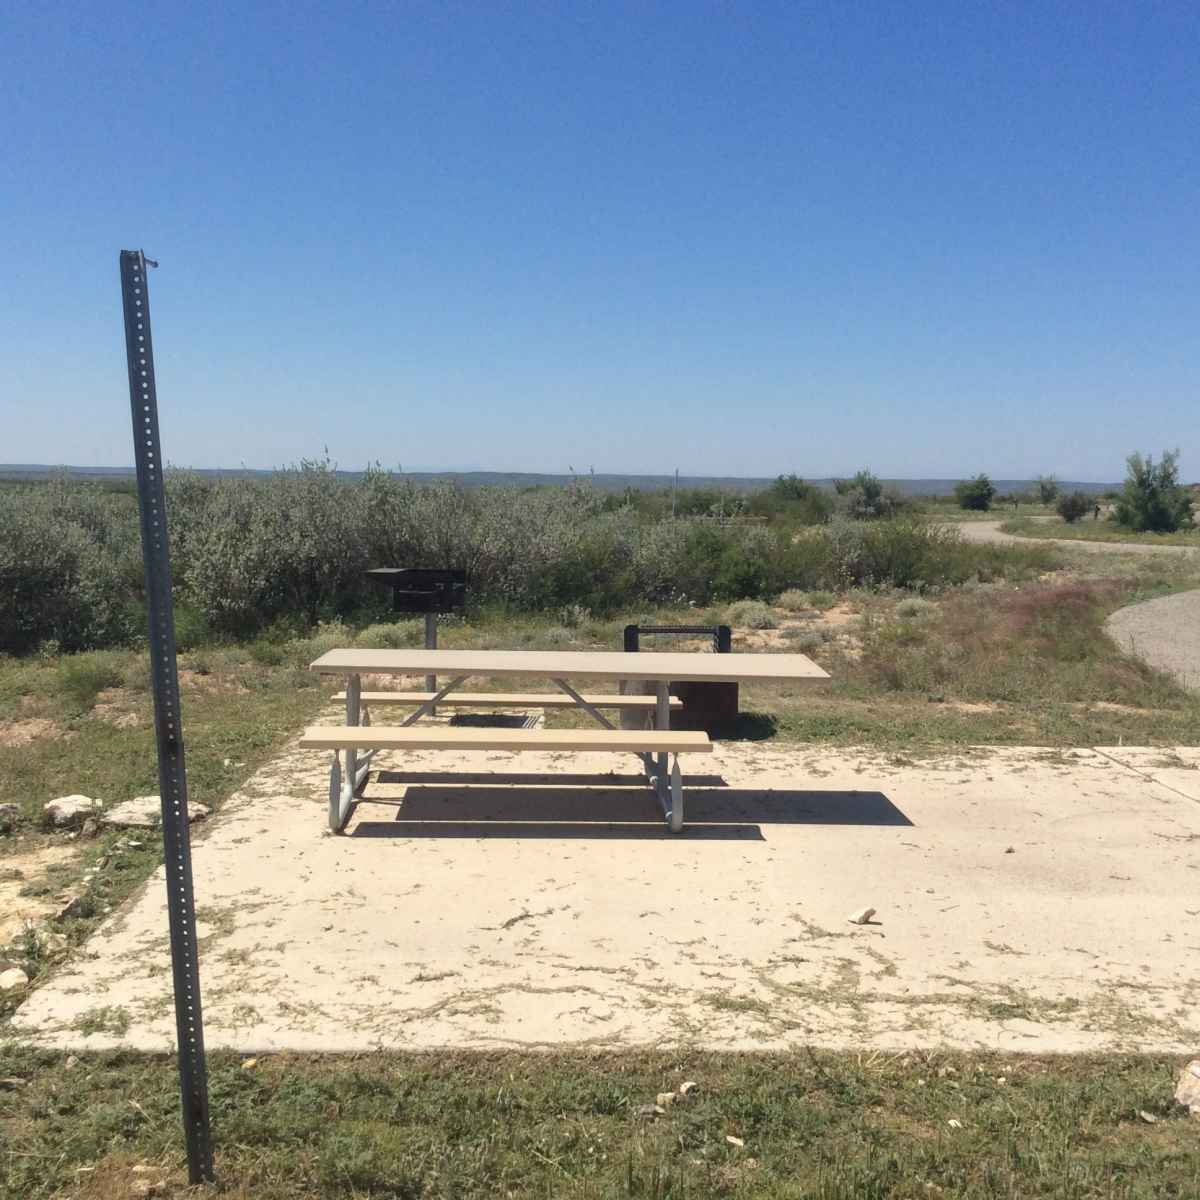 The picnic table and fire ring at Campsite 43 is designed to be usable in a wheelchair.